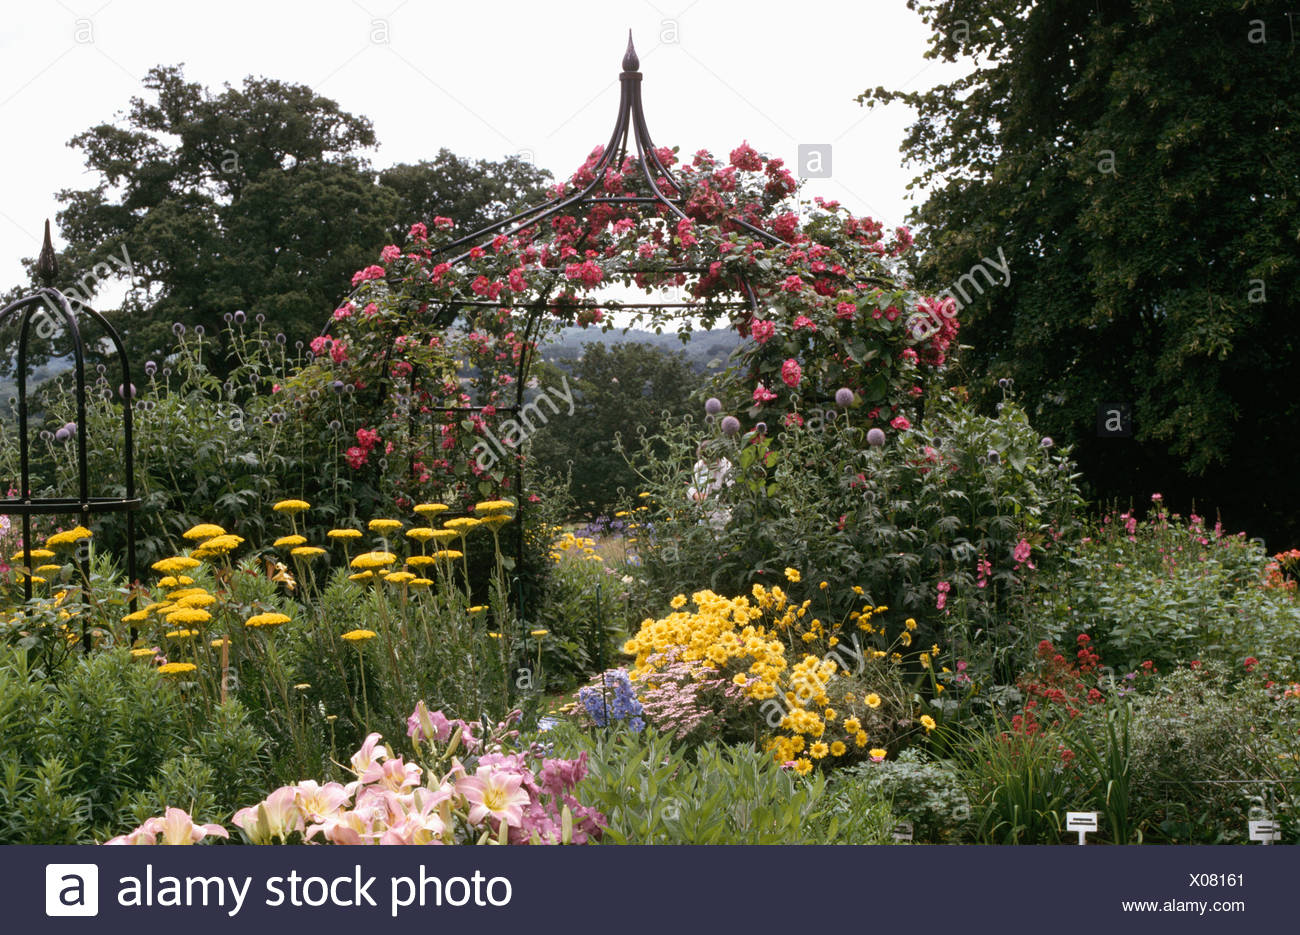 pink climbing roses on ornate metal gazebo in border with yellow